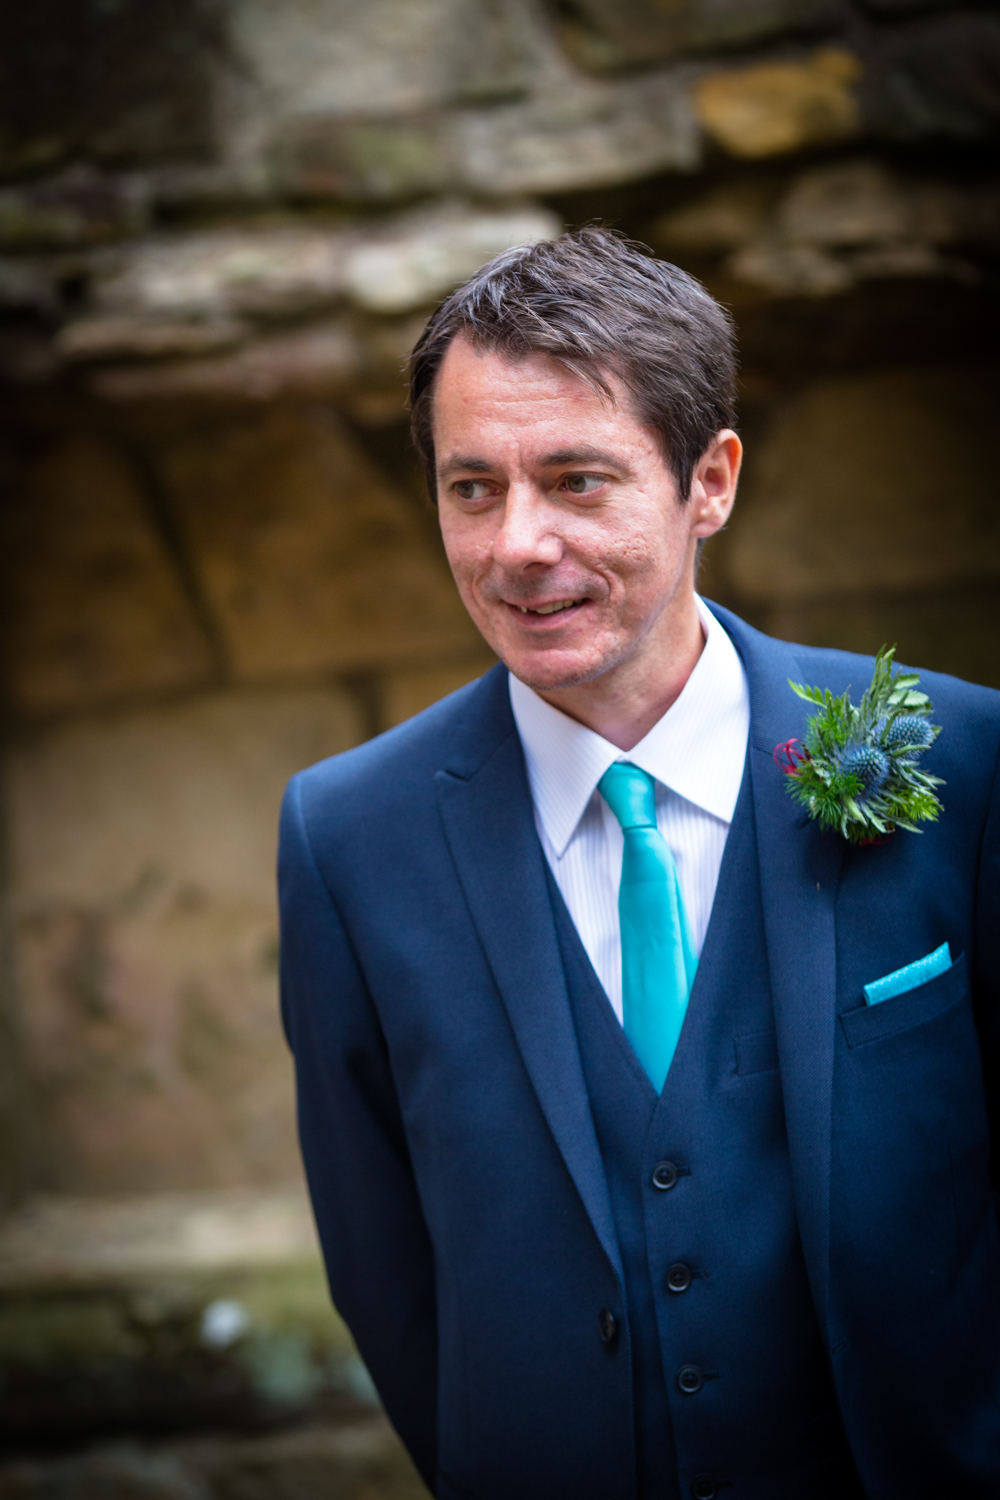 Clare and Charles wedding day blog-7.jpg